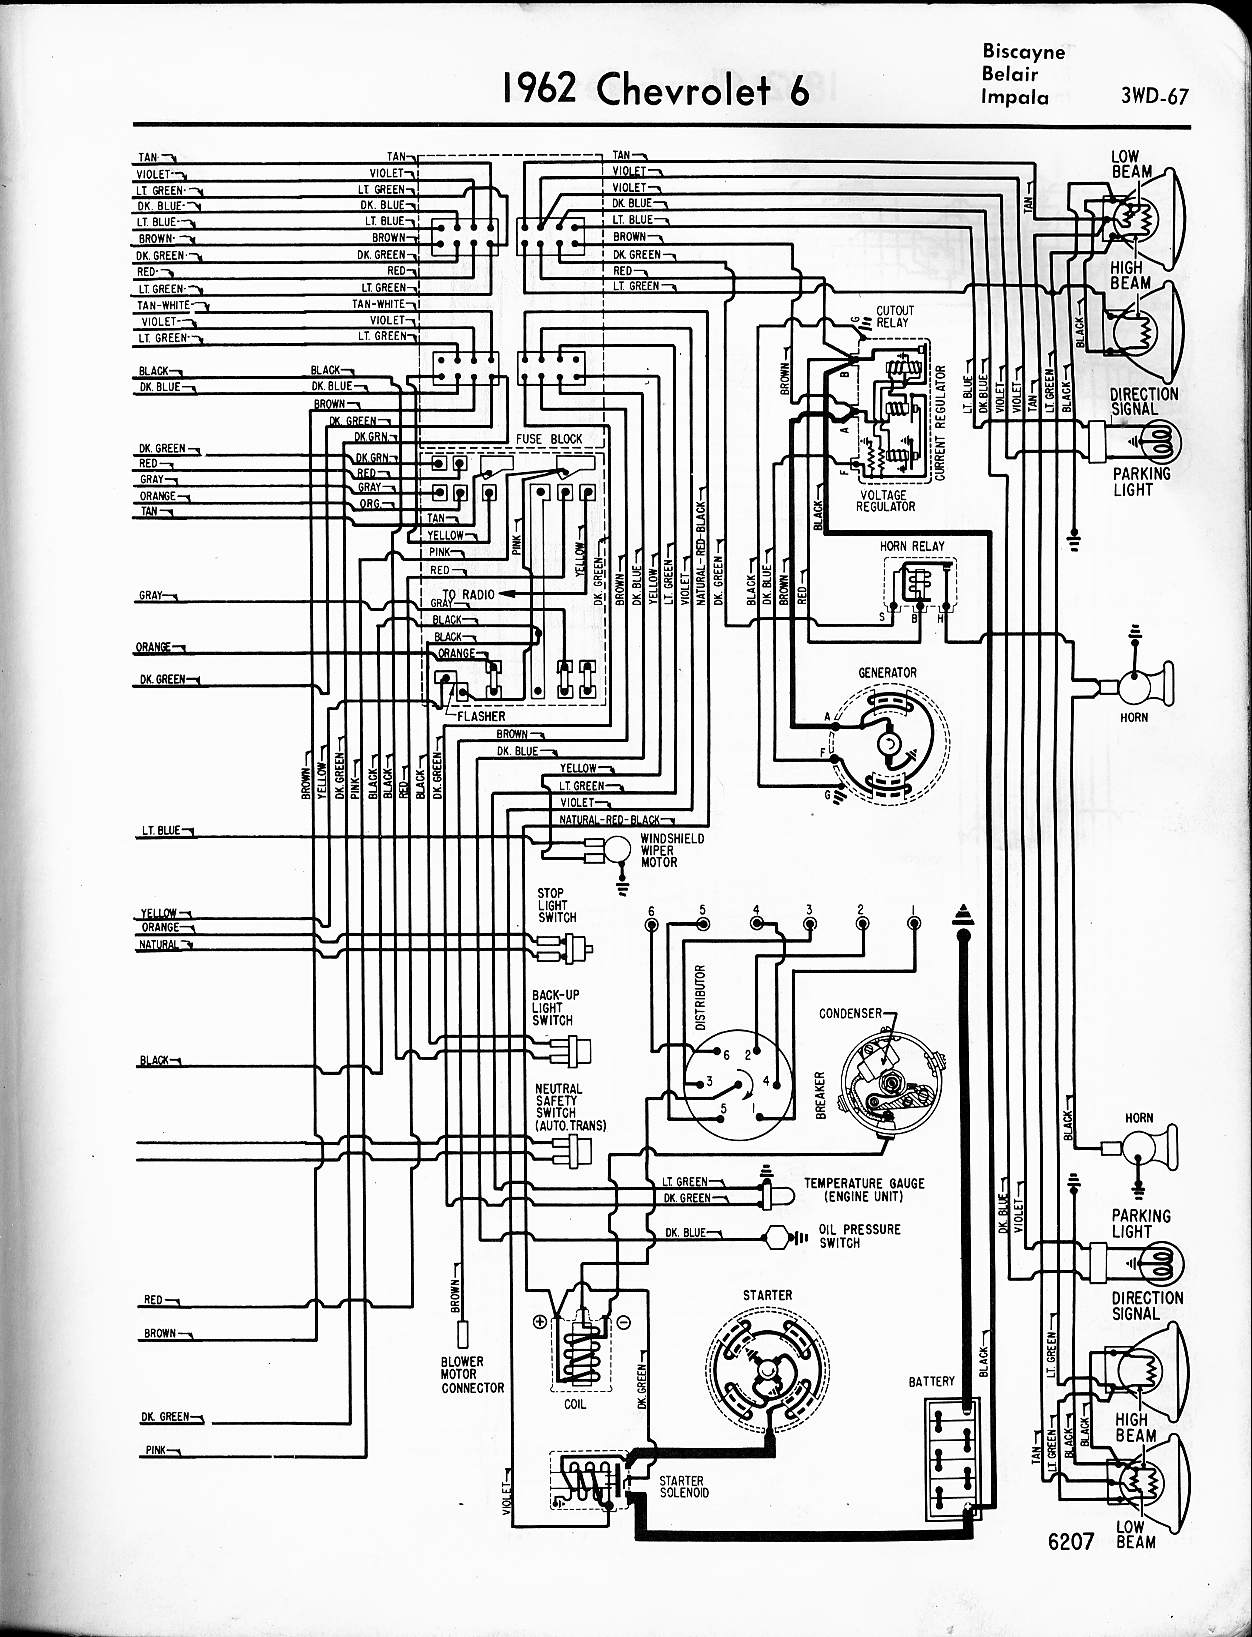 1962 Chevy Wiring Diagram Archive Of Automotive Ford Truck 57 65 Diagrams Rh Oldcarmanualproject Com Impala Chevrolet Pickup